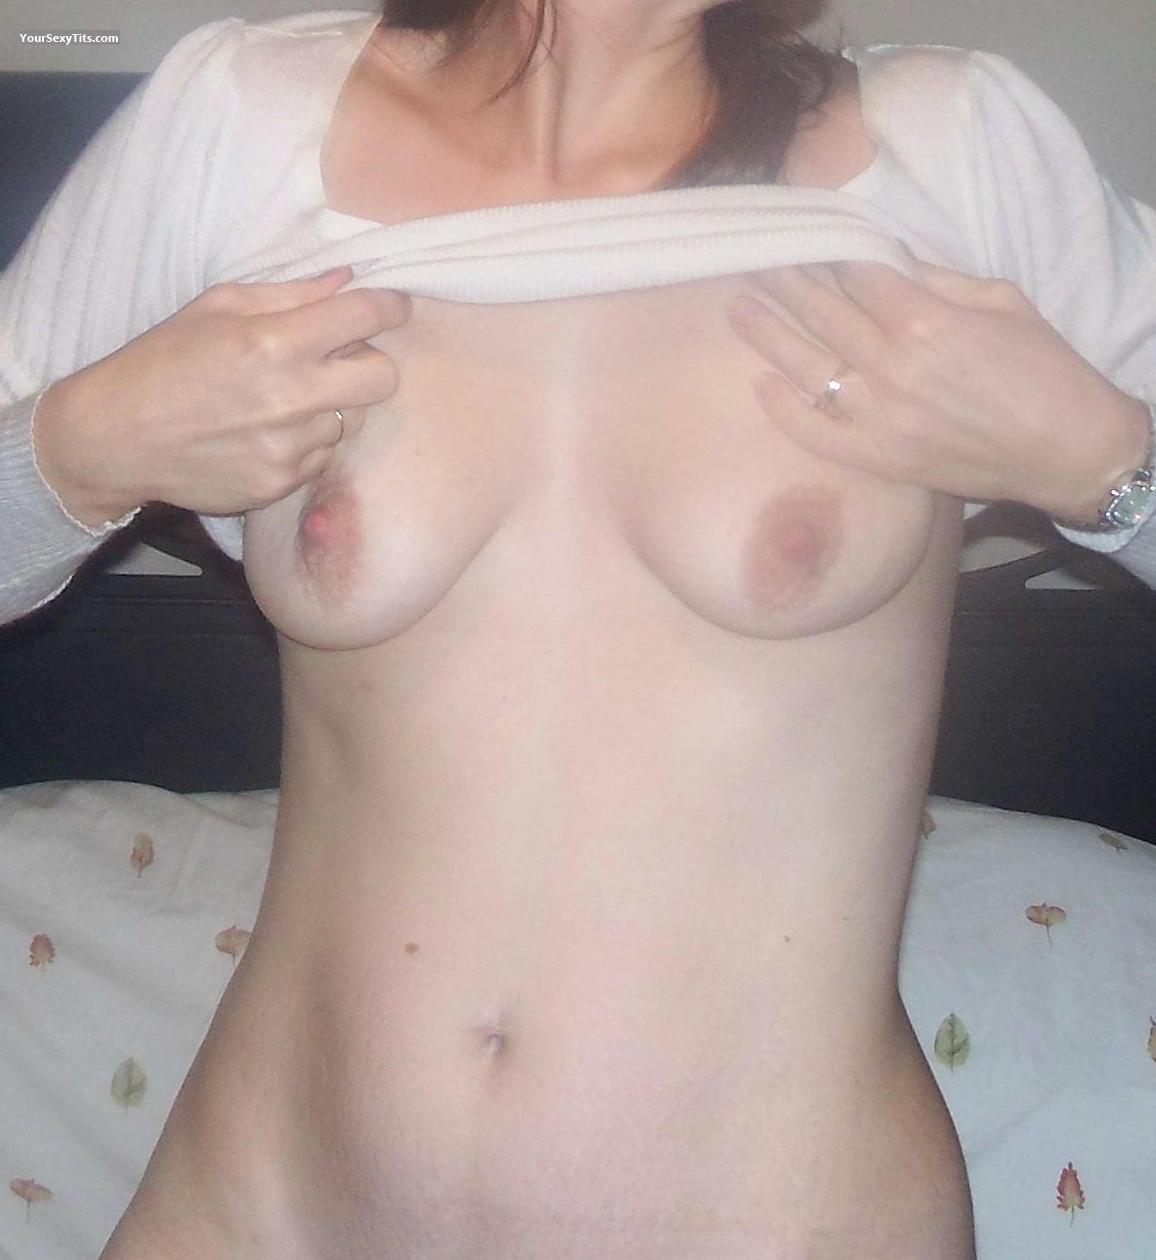 Tit Flash: Medium Tits - Fisky Kitty from United States